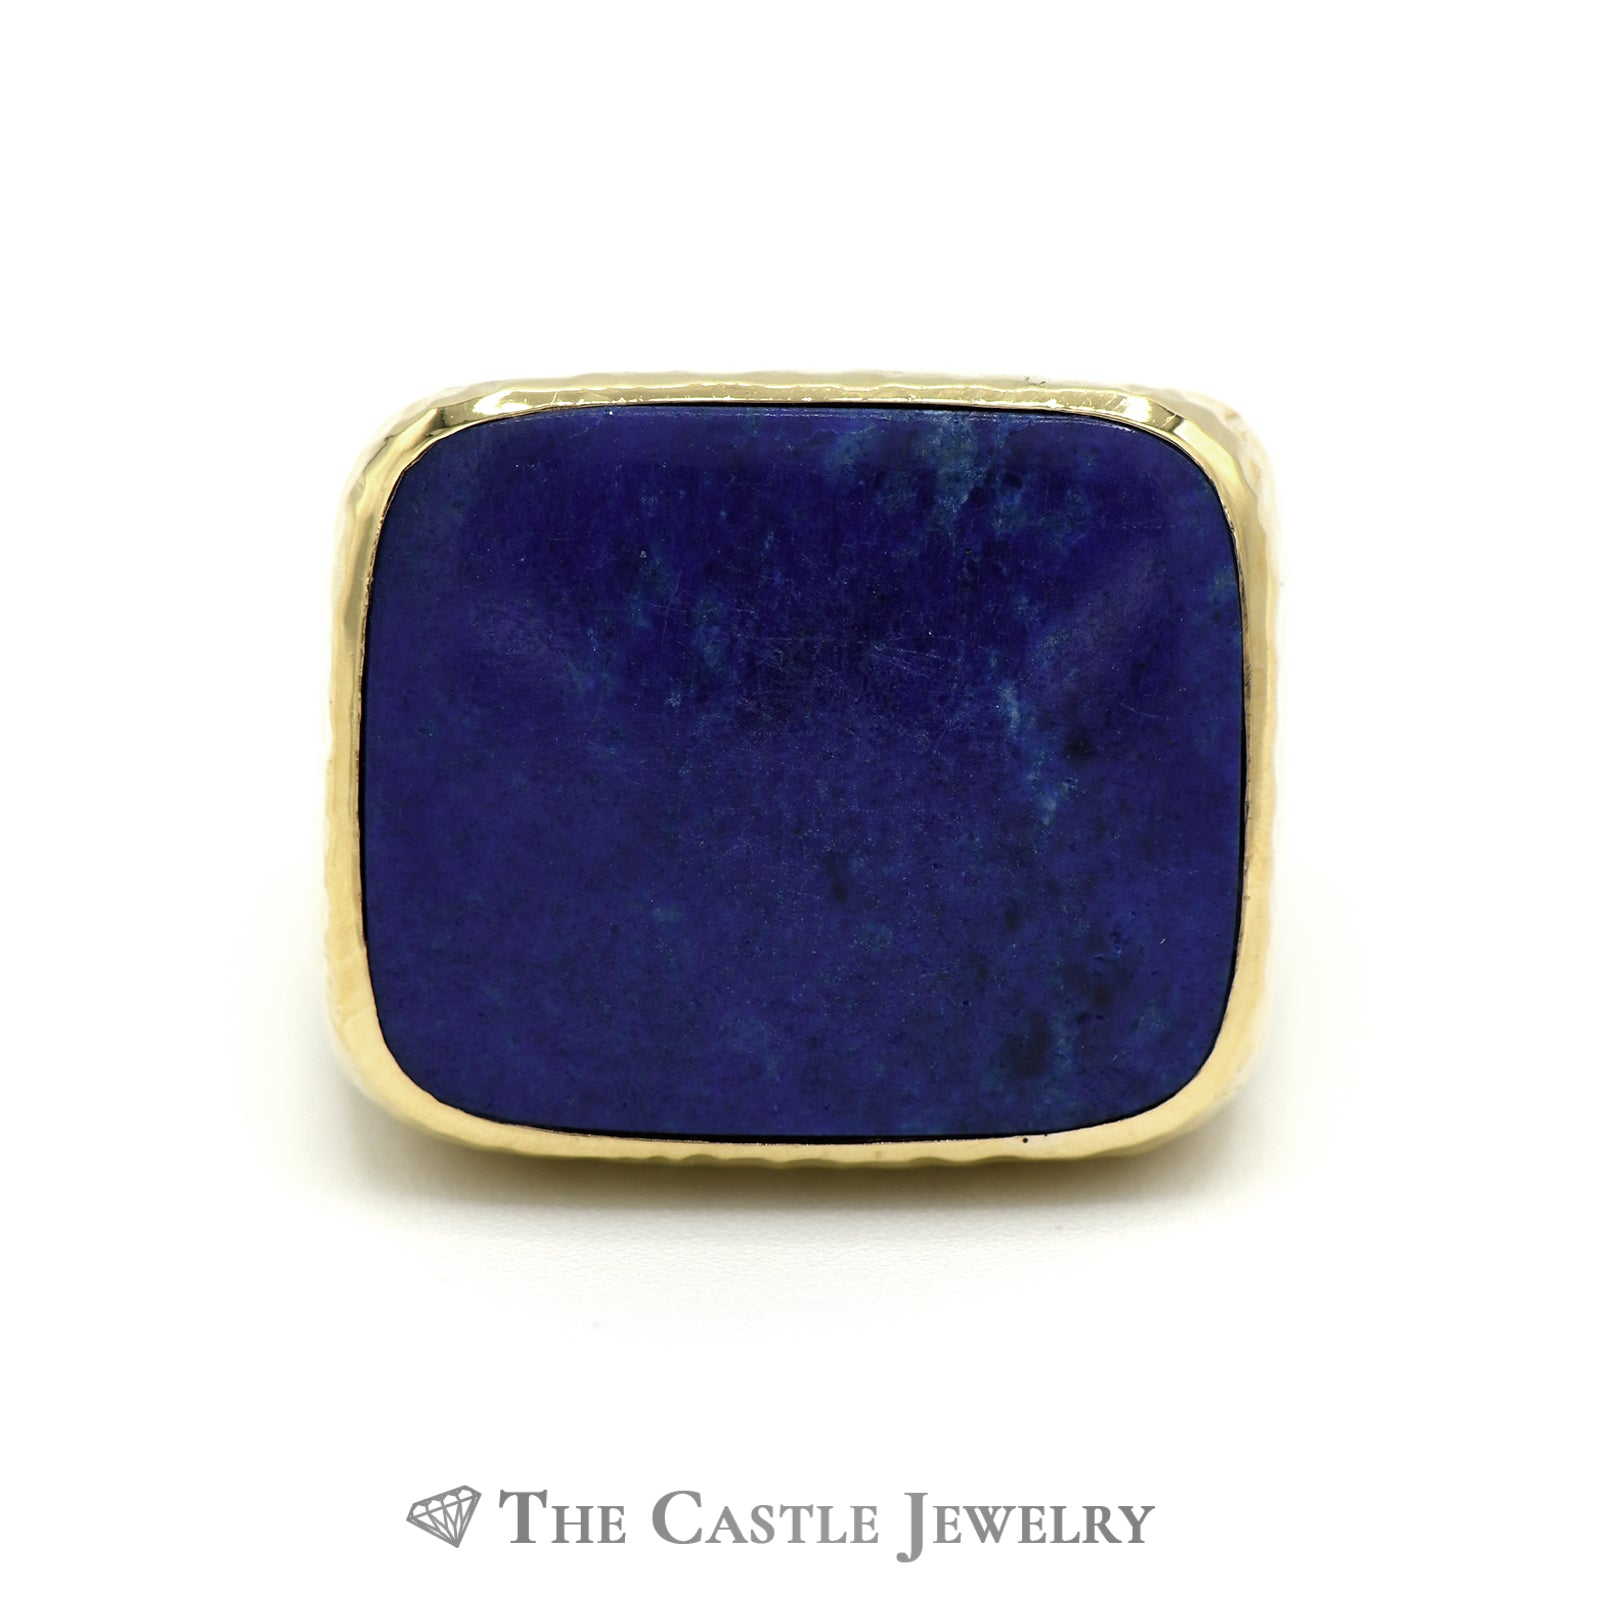 Men's Cushion Cut Lapis Ring with Diamond Cut Designed 18k Yellow Gold Mounting